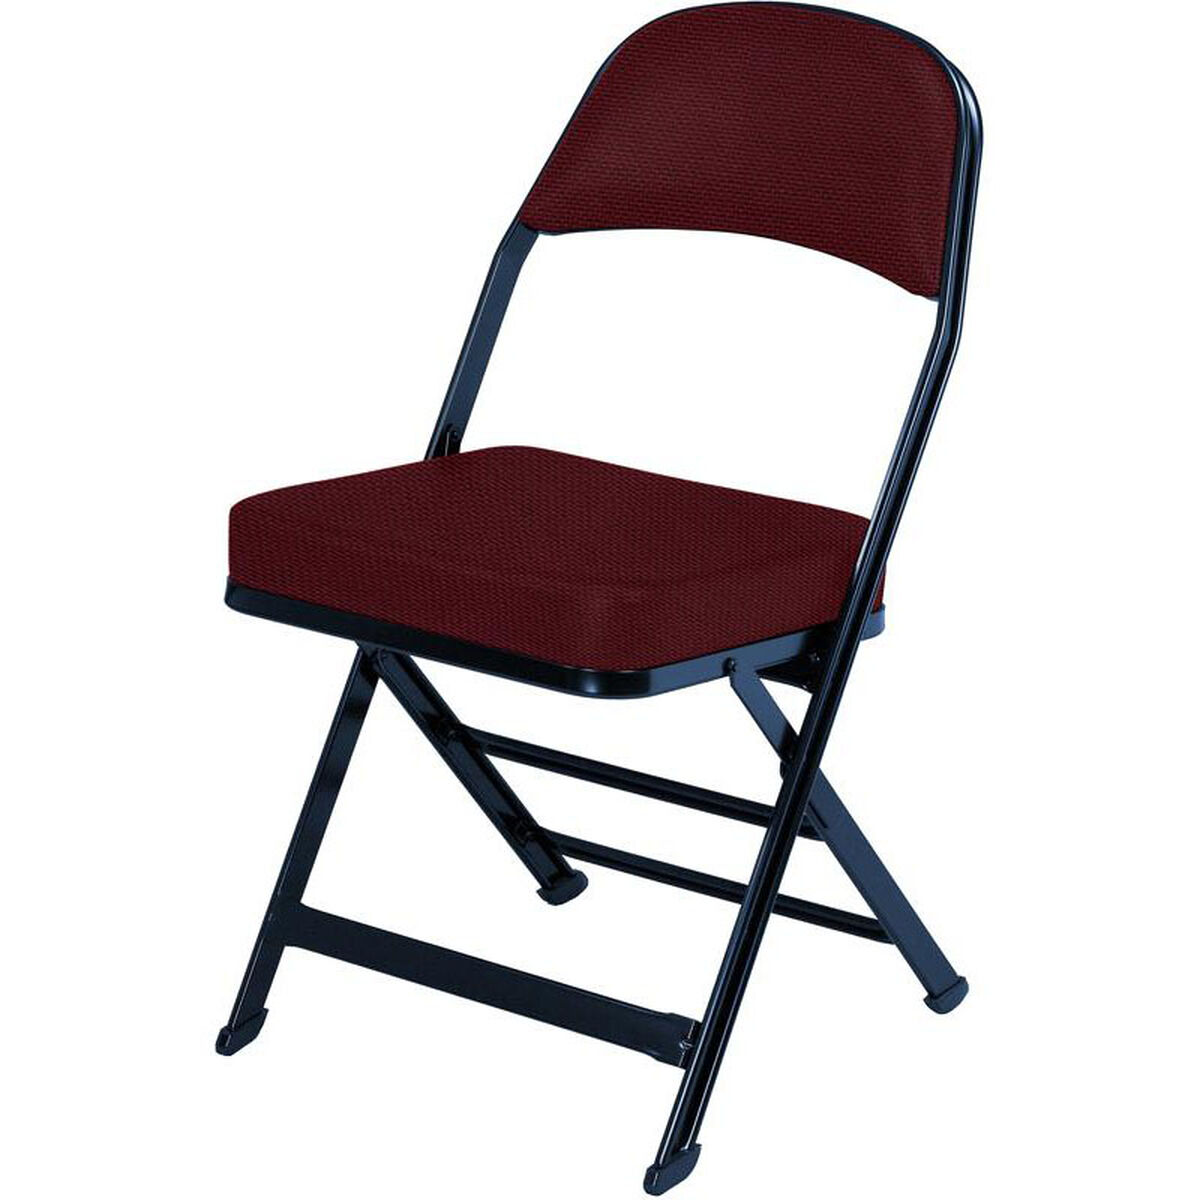 Our 3000 Series Fabric Upholstered Seat And Back Folding Chair With B Style Is On